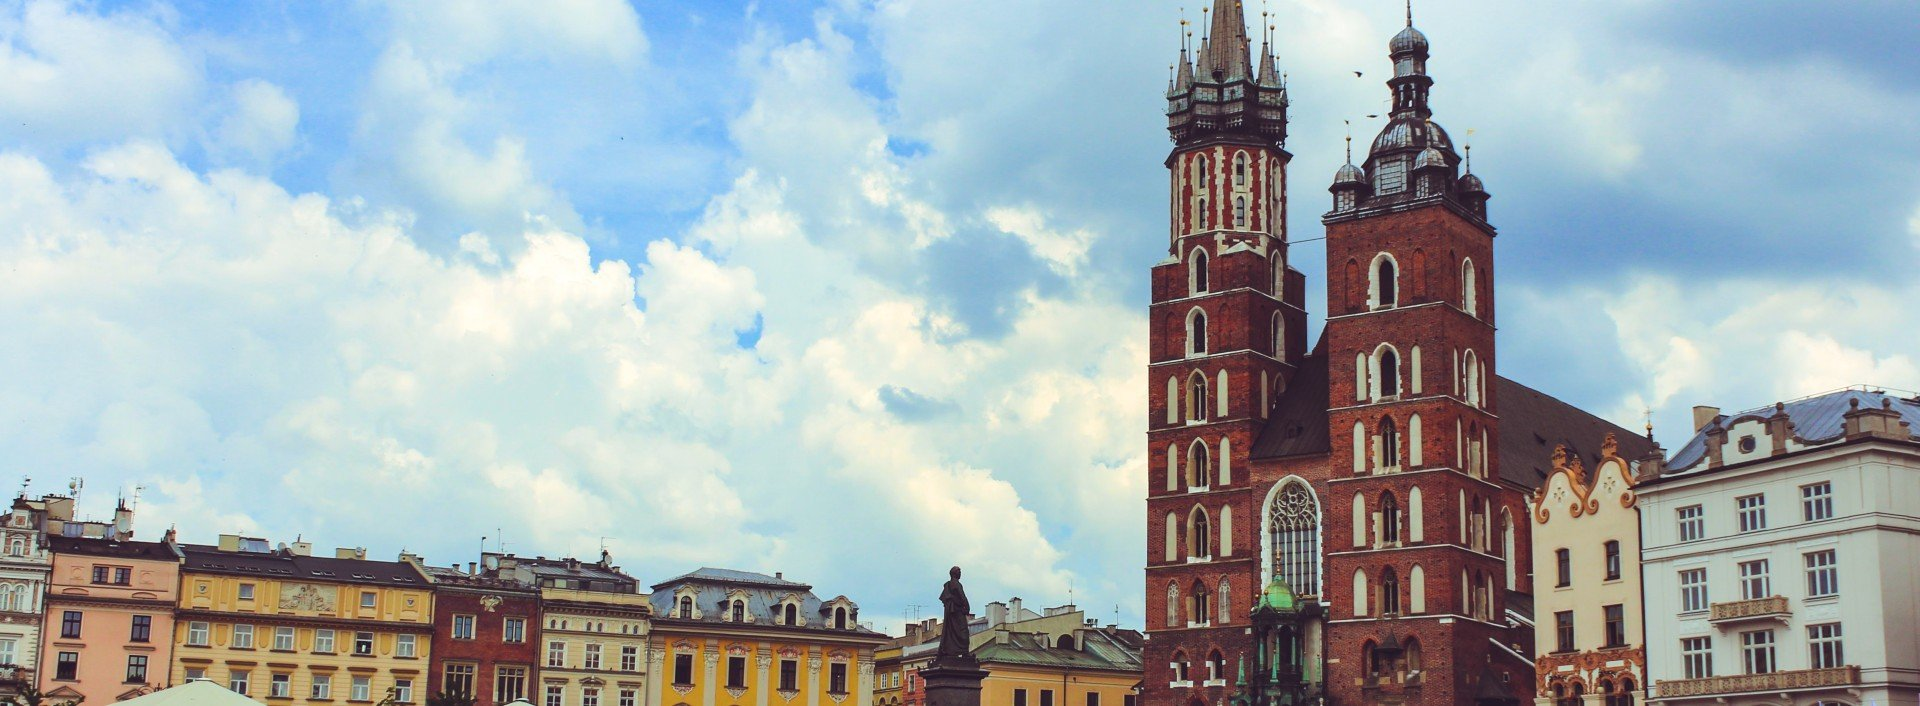 Polish Loan Words in English: the town square and church in Krakow, Poland is pictured on a sunny day.